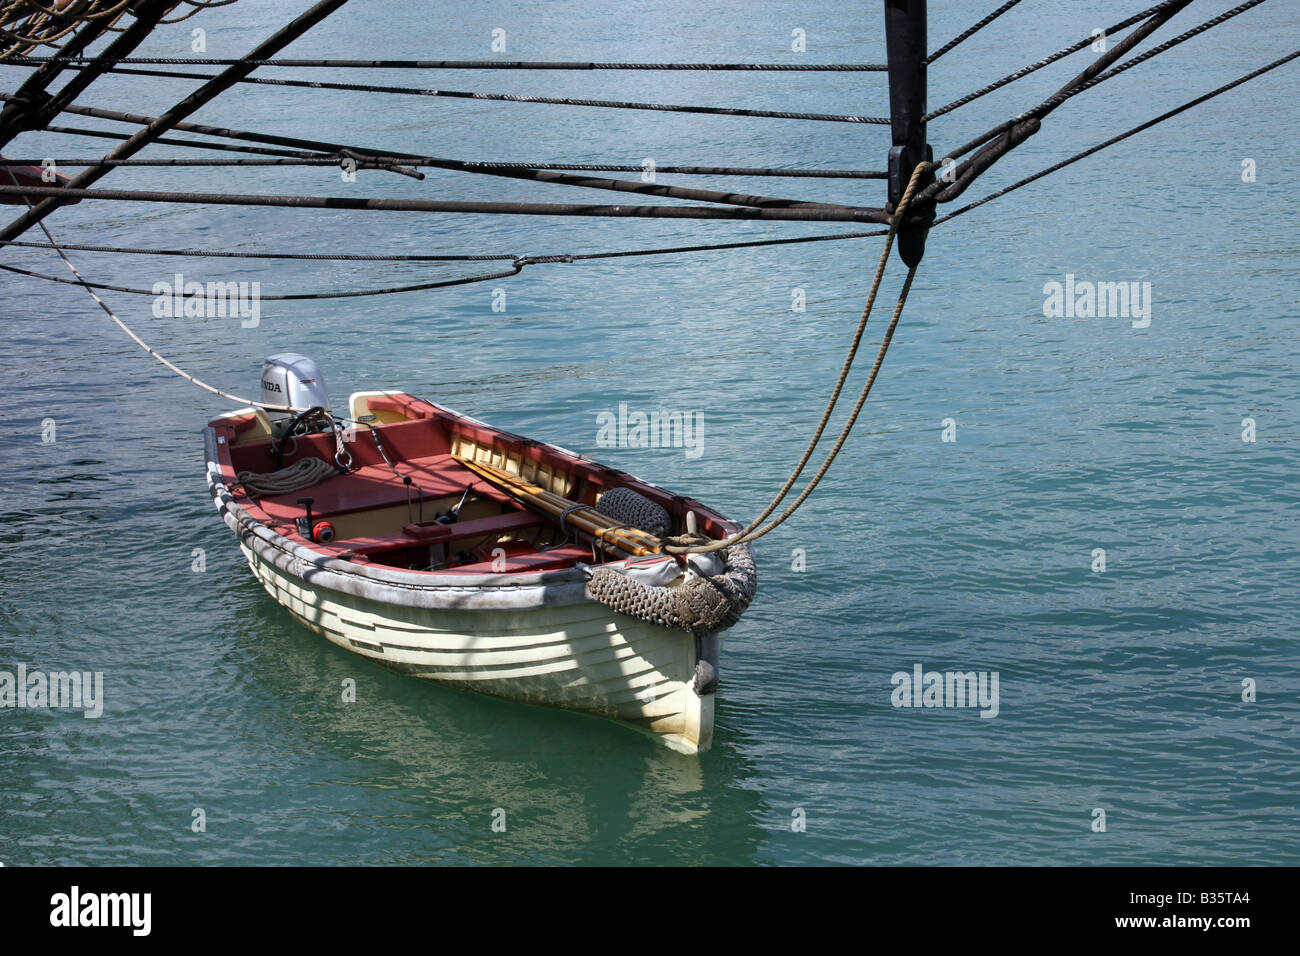 A dingy boat tied up to the US Brig Niagara dock in Port Washington Wisconsin - Stock Image